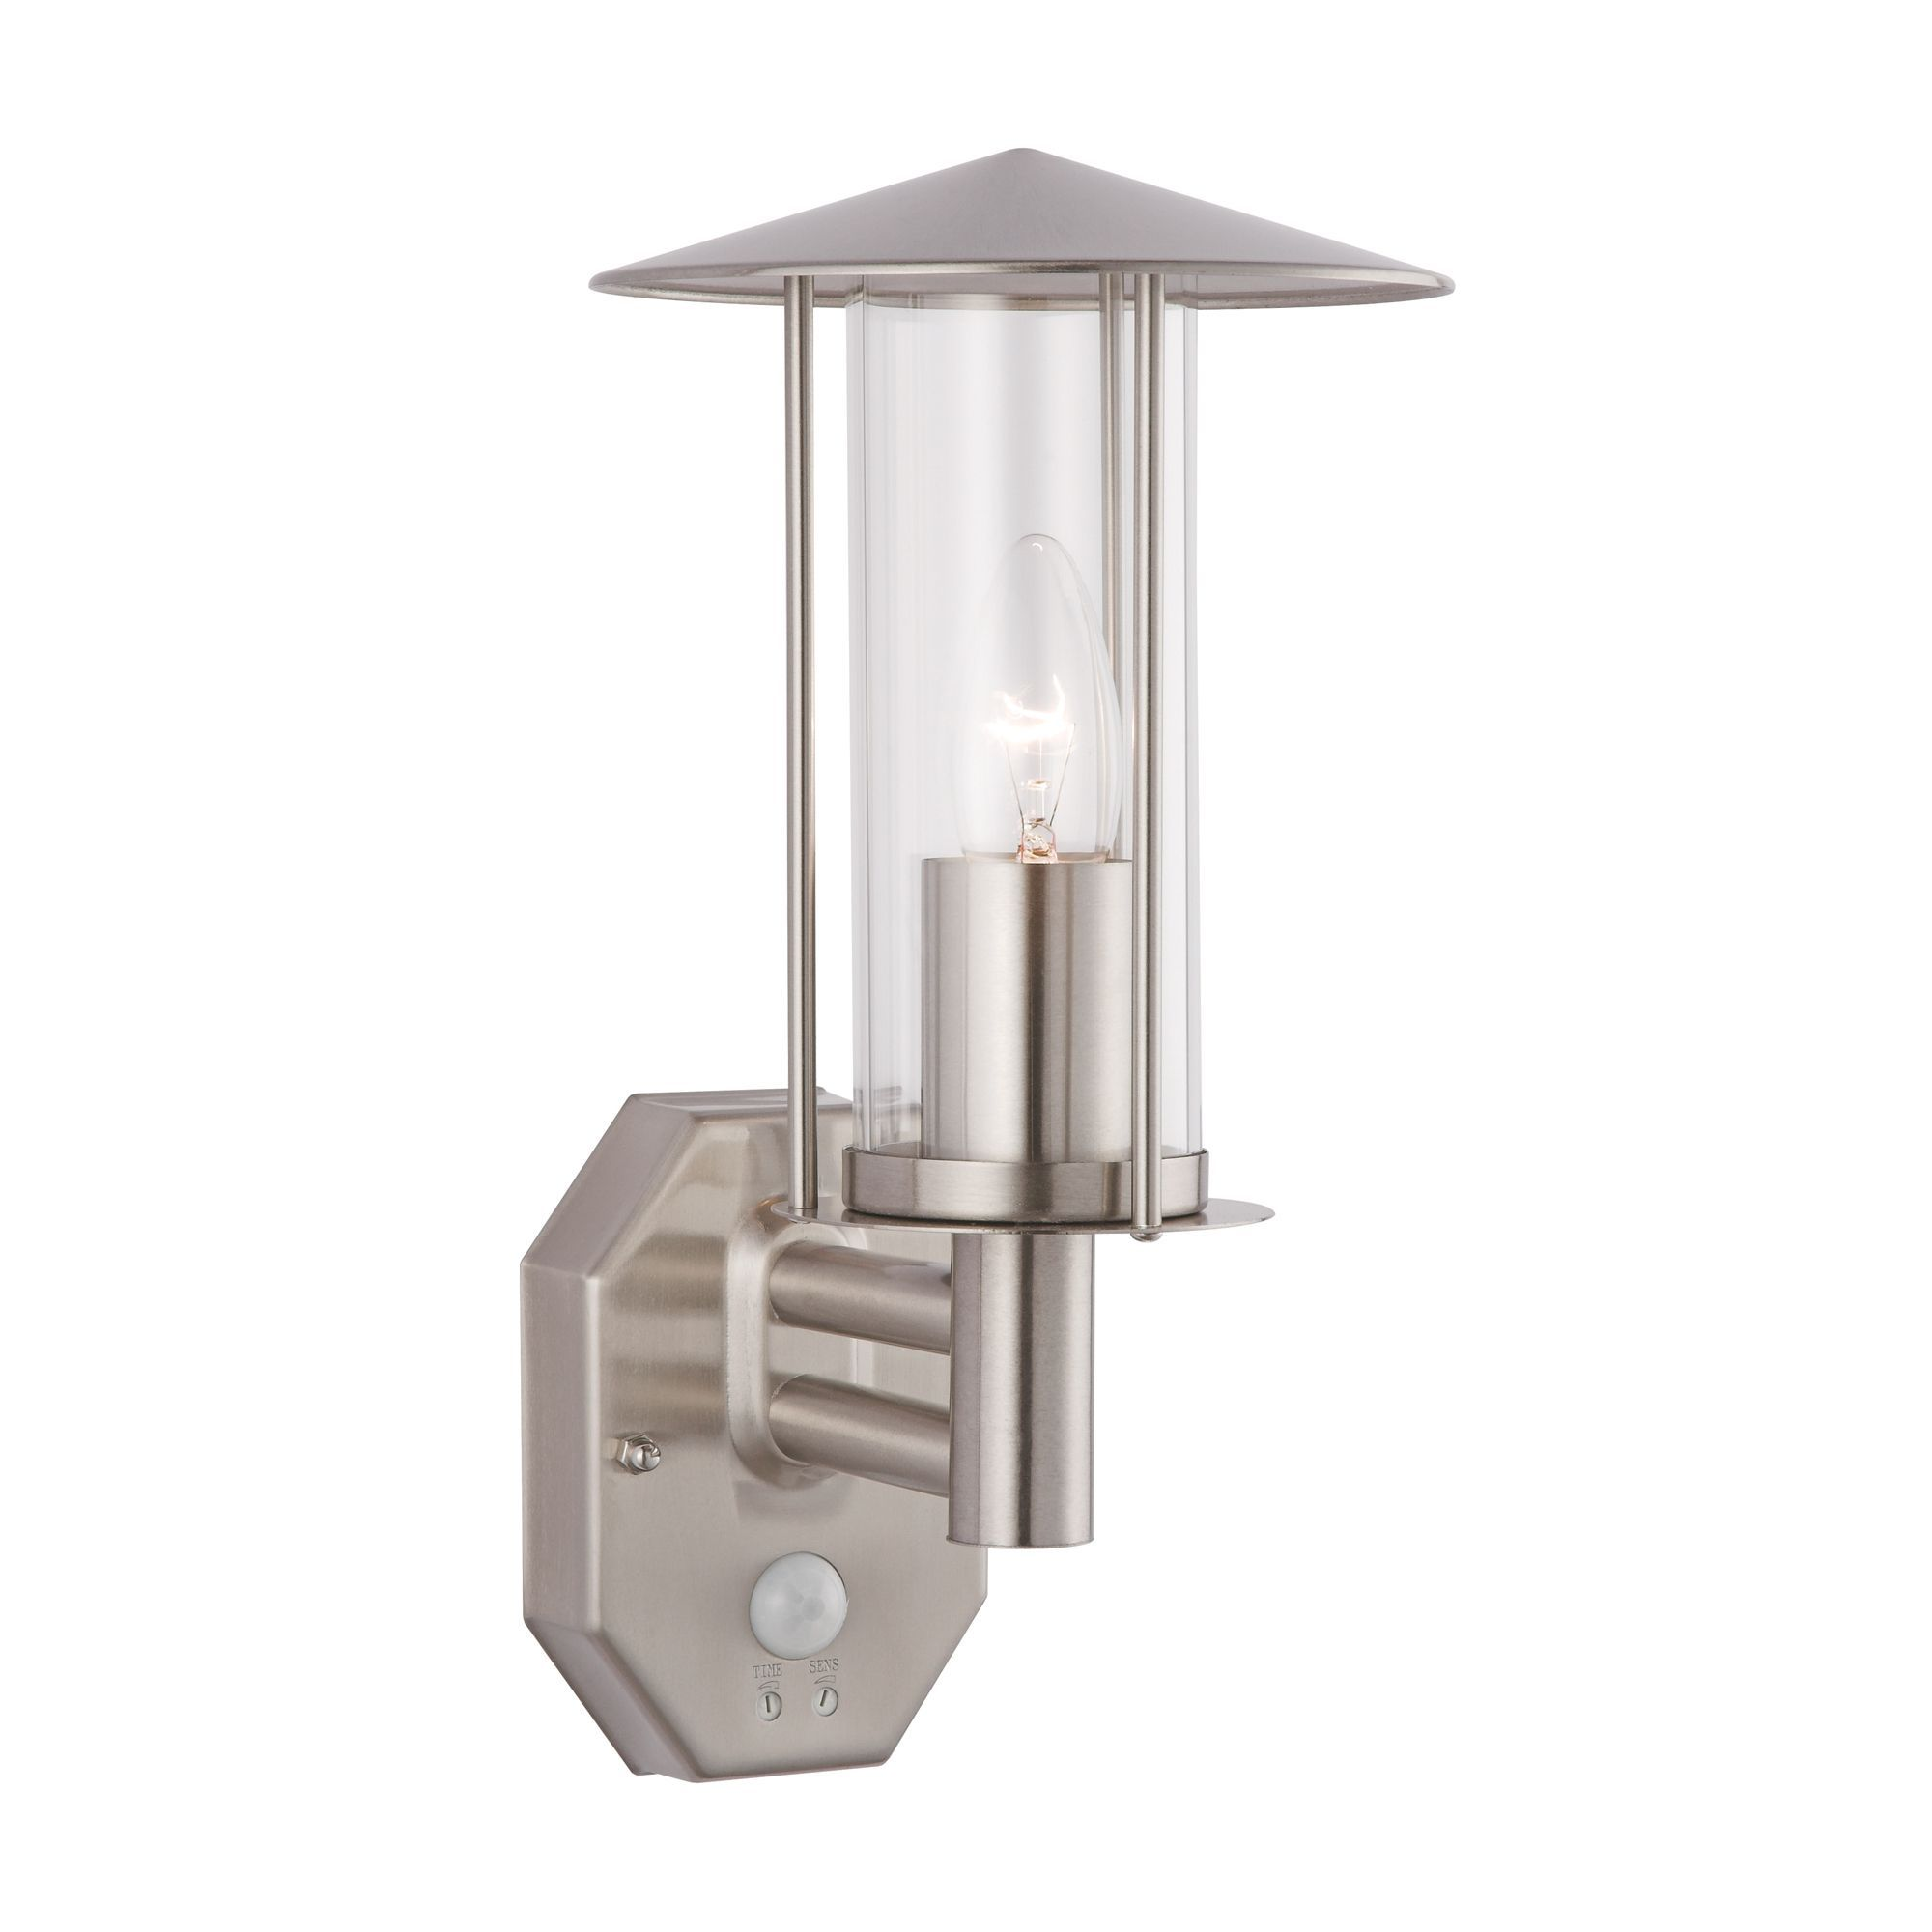 Trieste Stainless Steel Black 60w Mains Powered External Pir Lantern Wickes Wiring Instructions Departments Diy At Bq